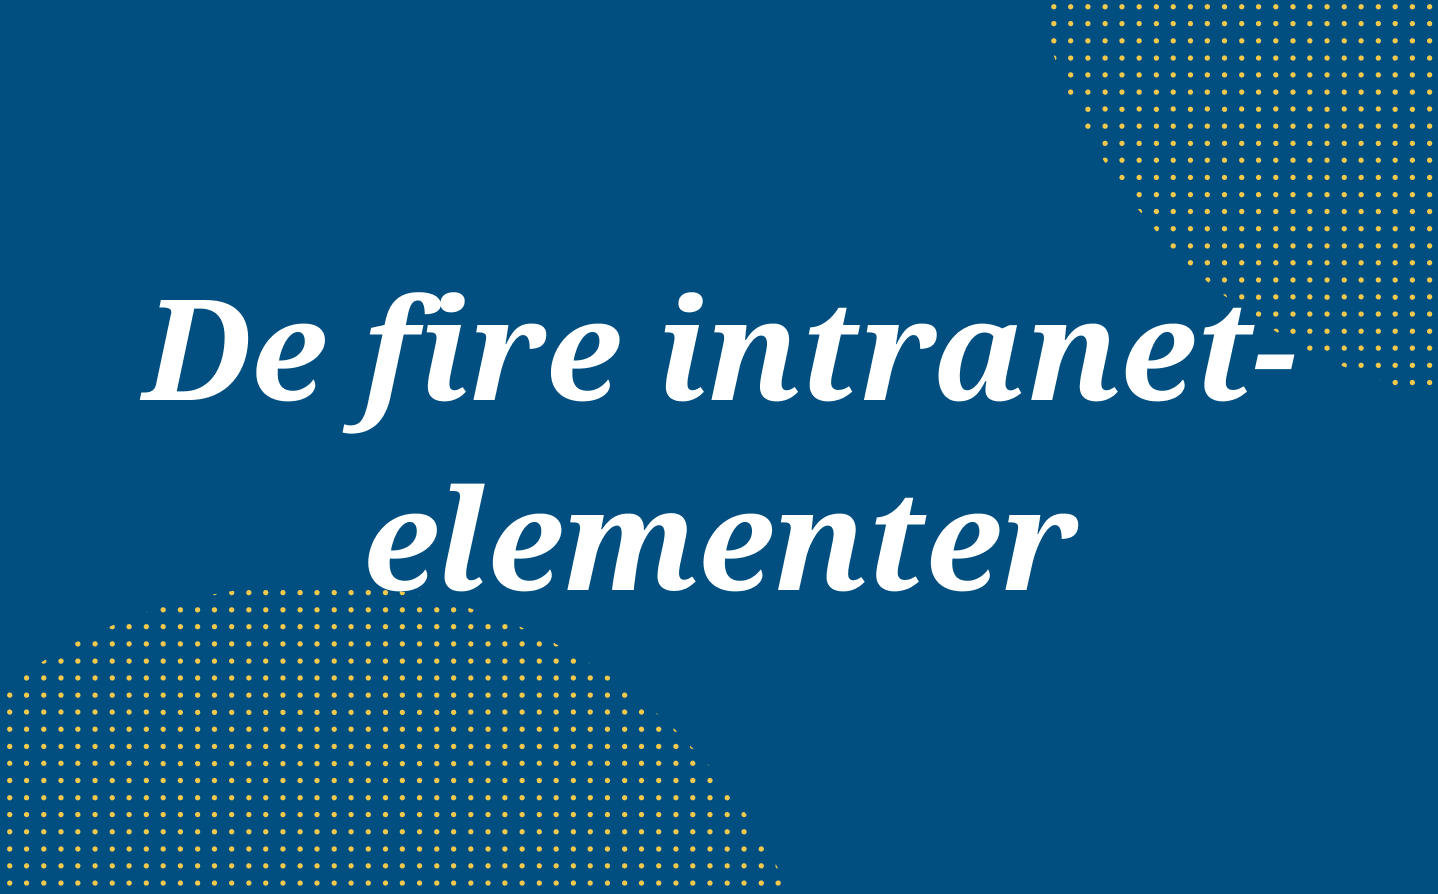 De fire intranet-elementer-2